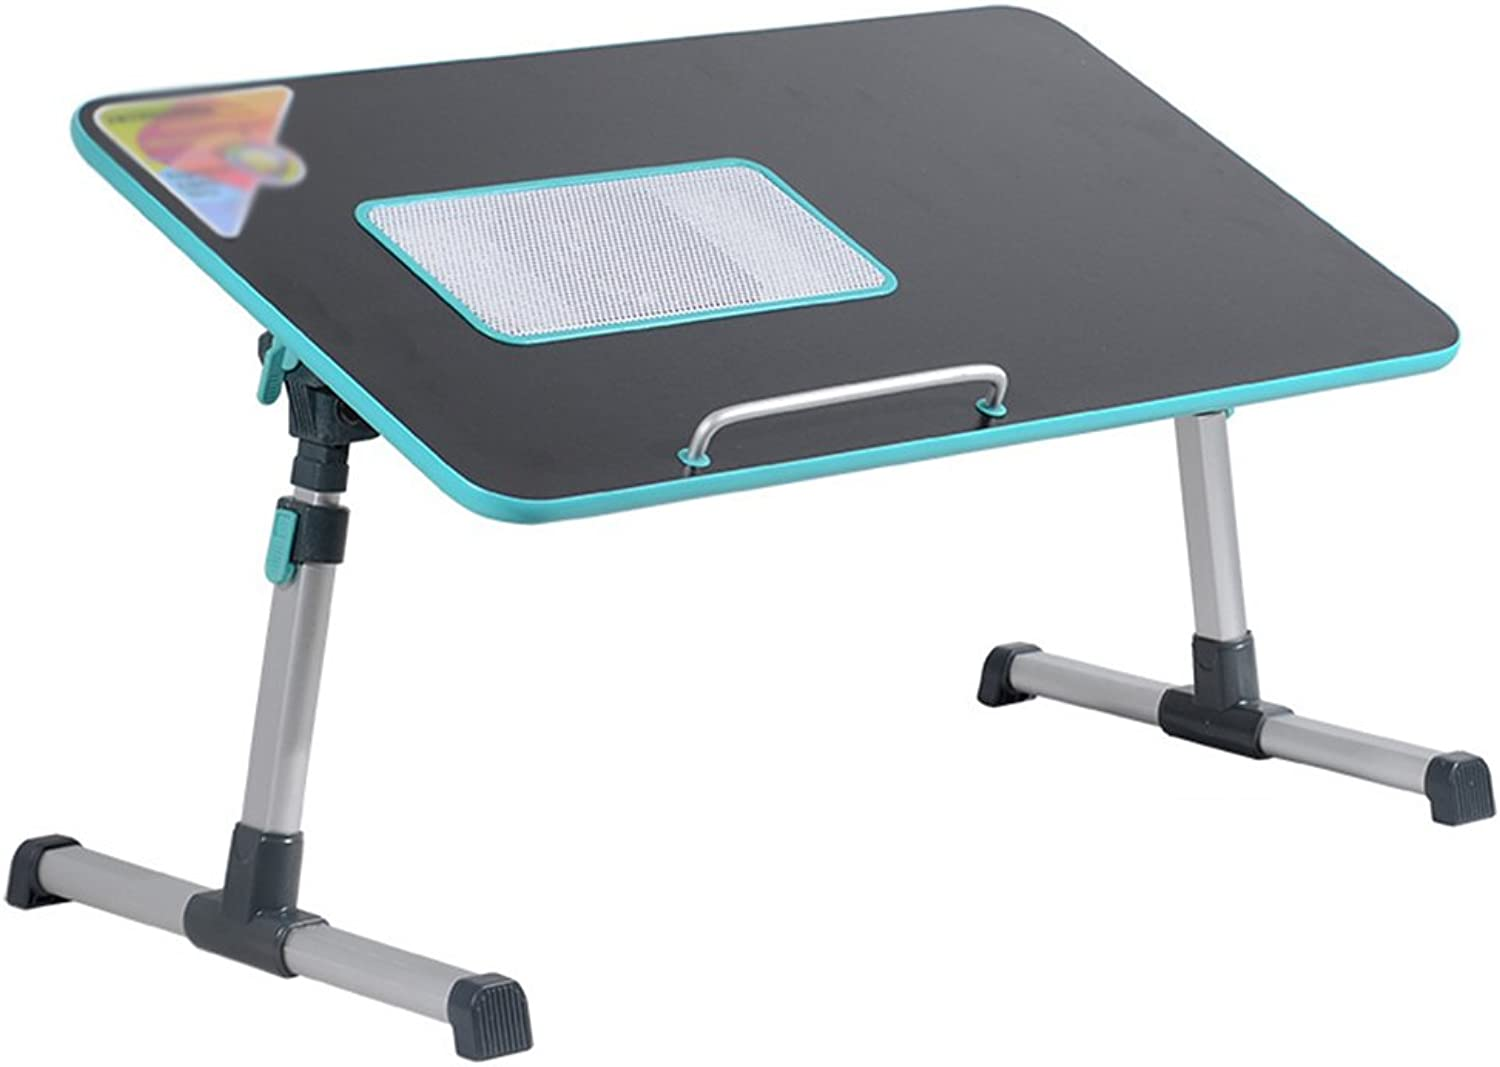 PENGFEI Portable Standing Desk Folding Computer On Bed Small Spaces Multifunction Wood-Based Panel Foldable with Cooling Fan Adjustable Height 2 colors 53x30CM (color   Black with Cooling Fan)